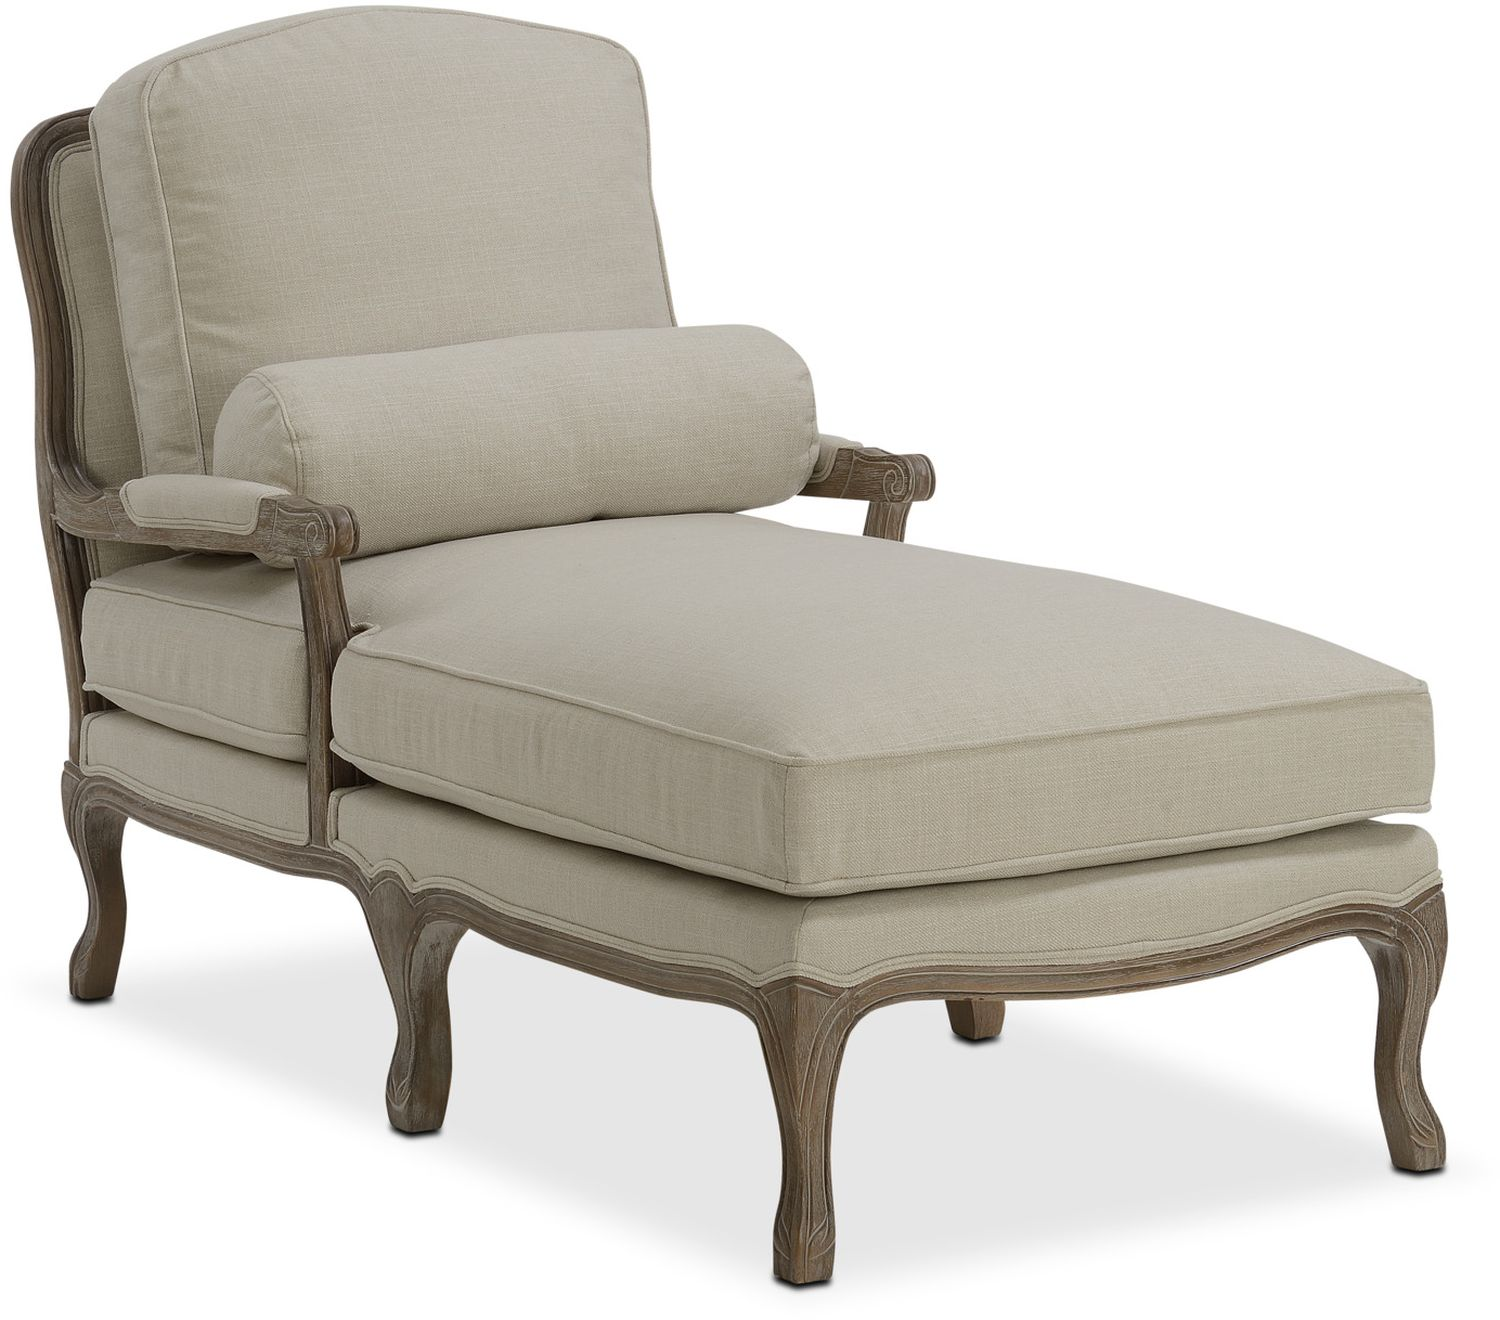 Living Room Furniture - Maria Chaise